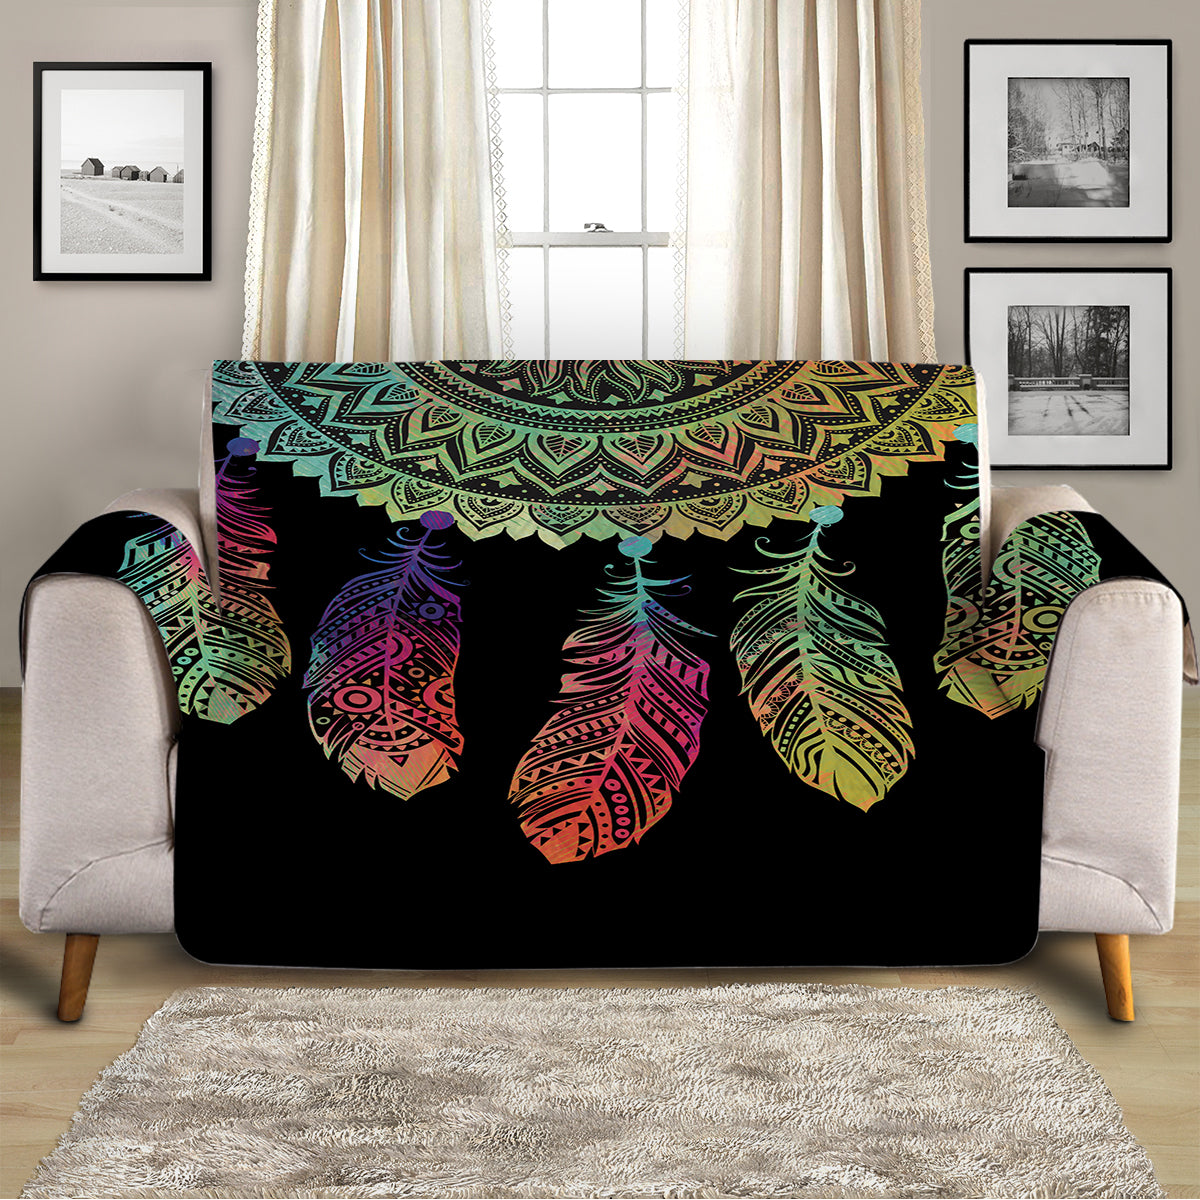 Dreamland Sofa Cover